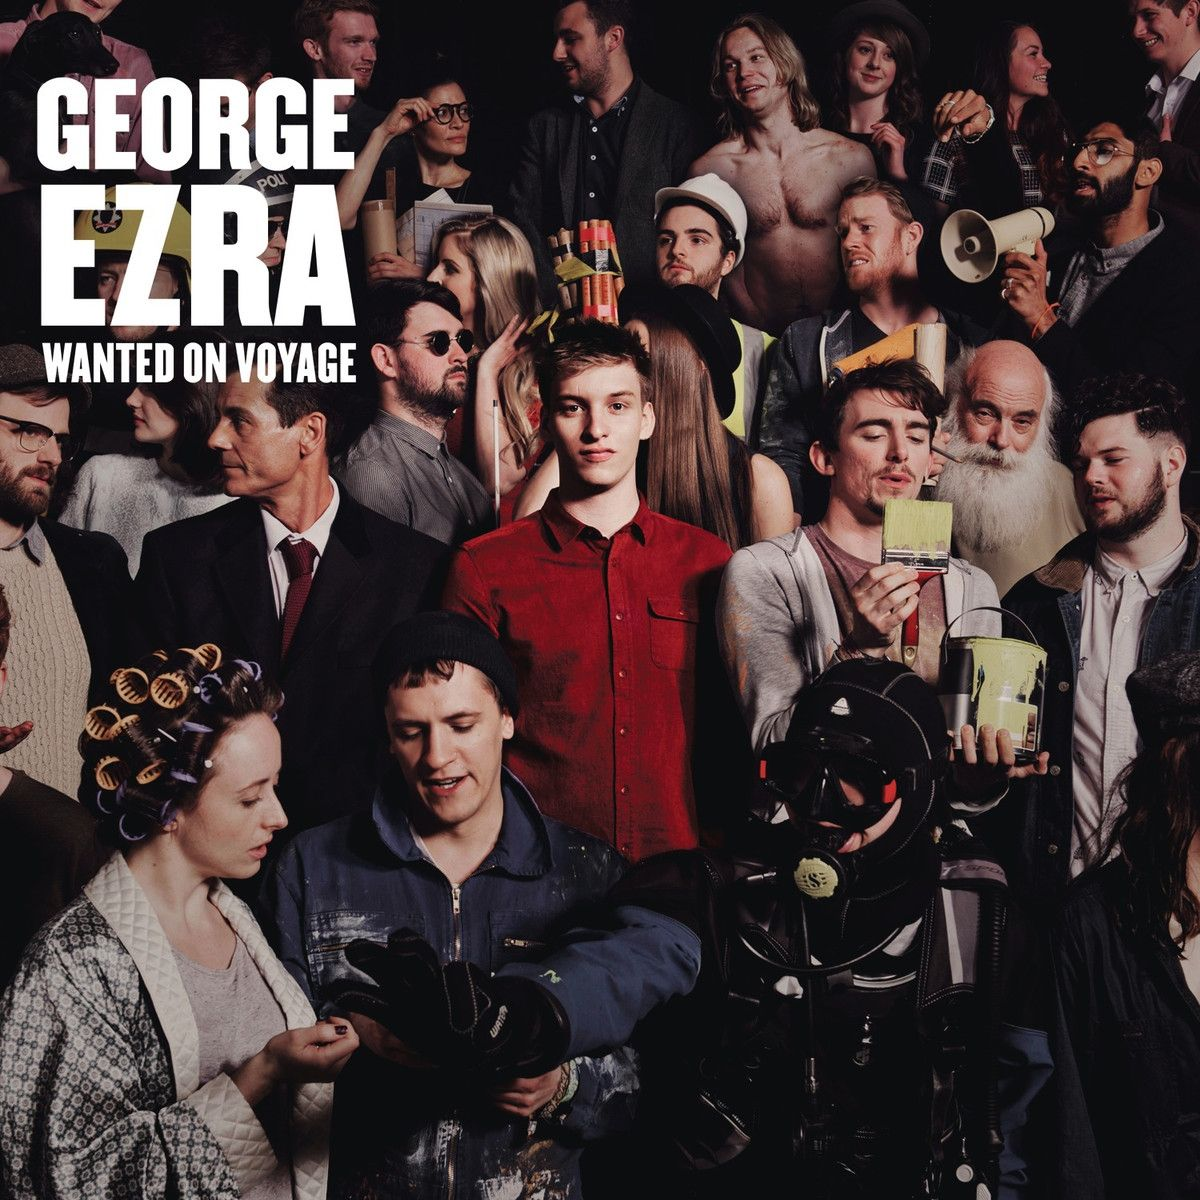 Imagem do álbum Wanted On Voyage (Deluxe Version) do(a) artista George Ezra